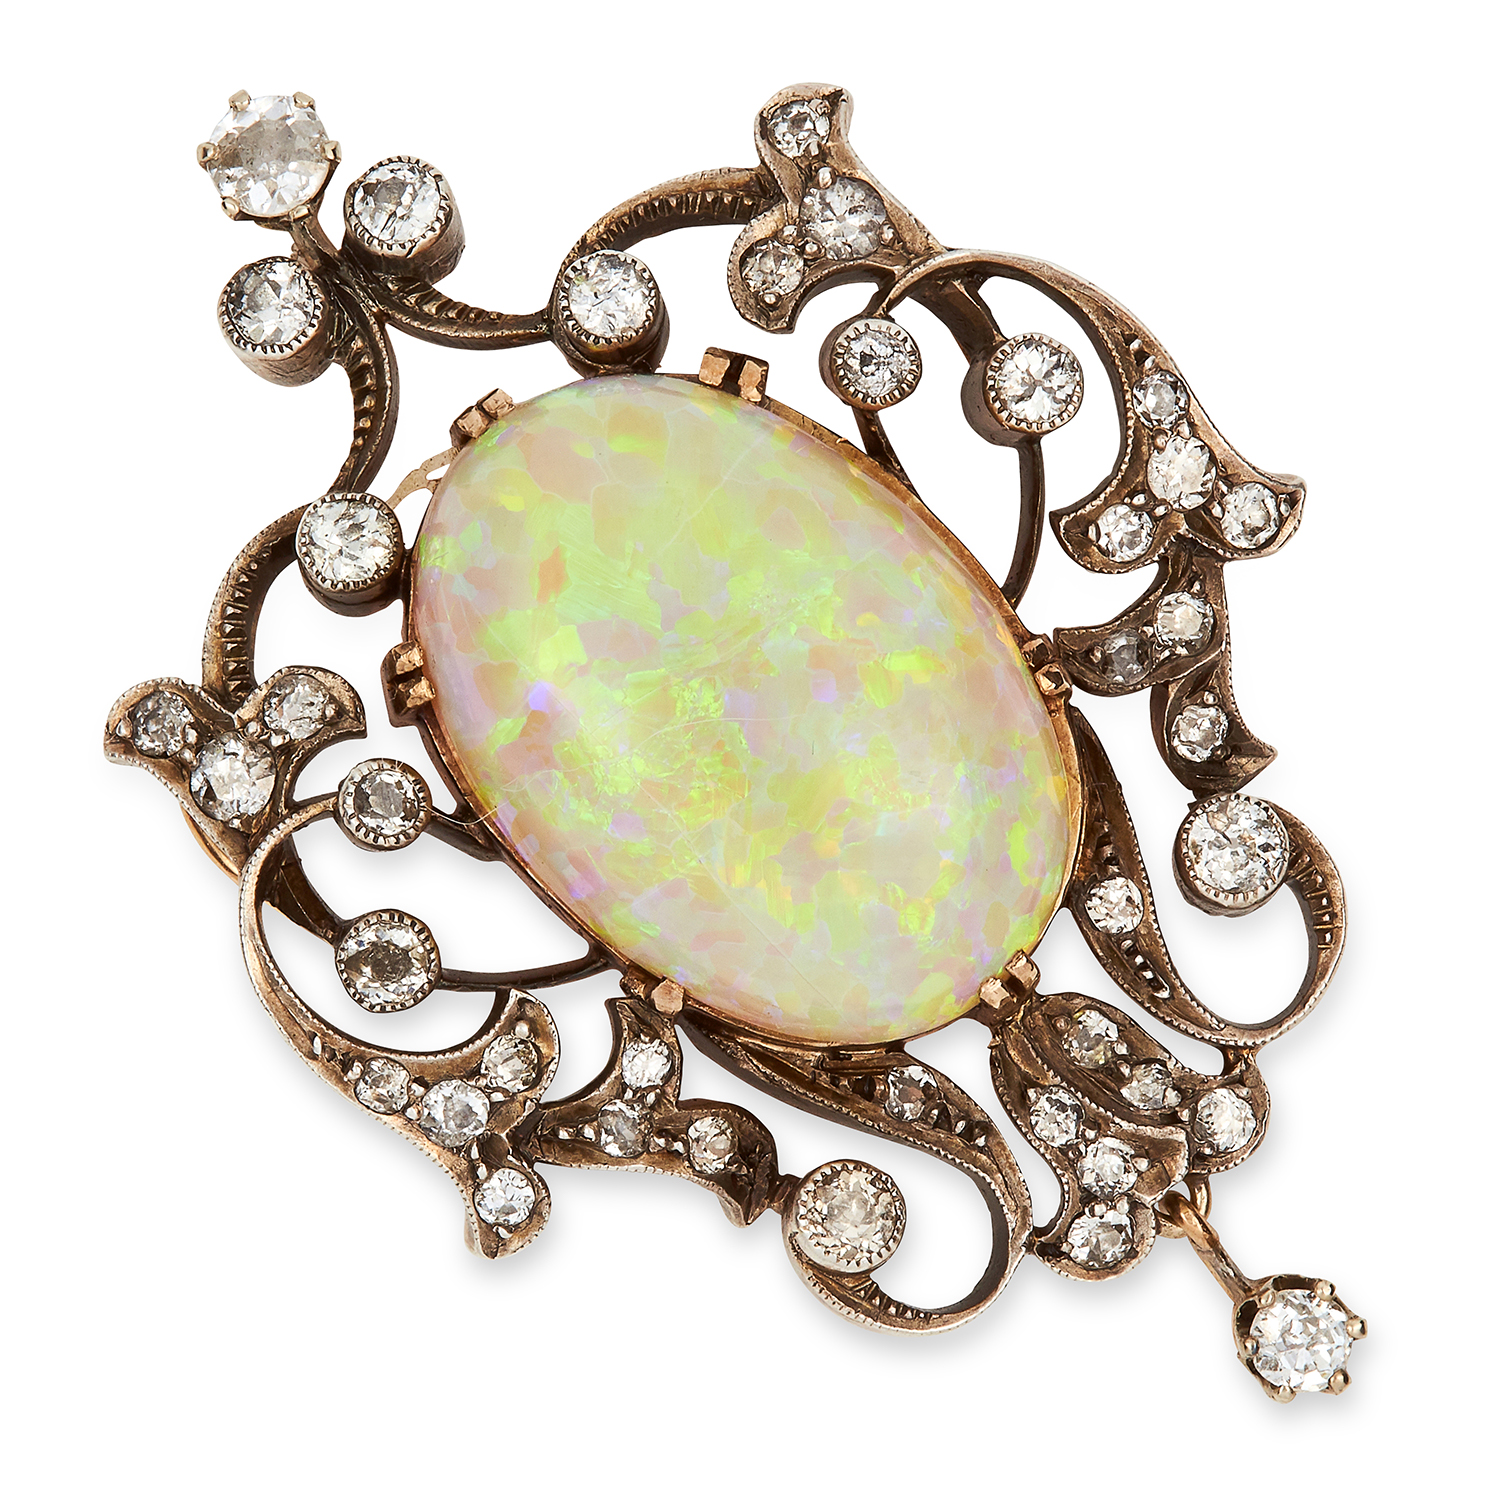 Los 4 - ANTIQUE OPAL AND DIAMOND PENDANT CIRCA 1870 set with an oval cabochon opal of 19.63 carats and old